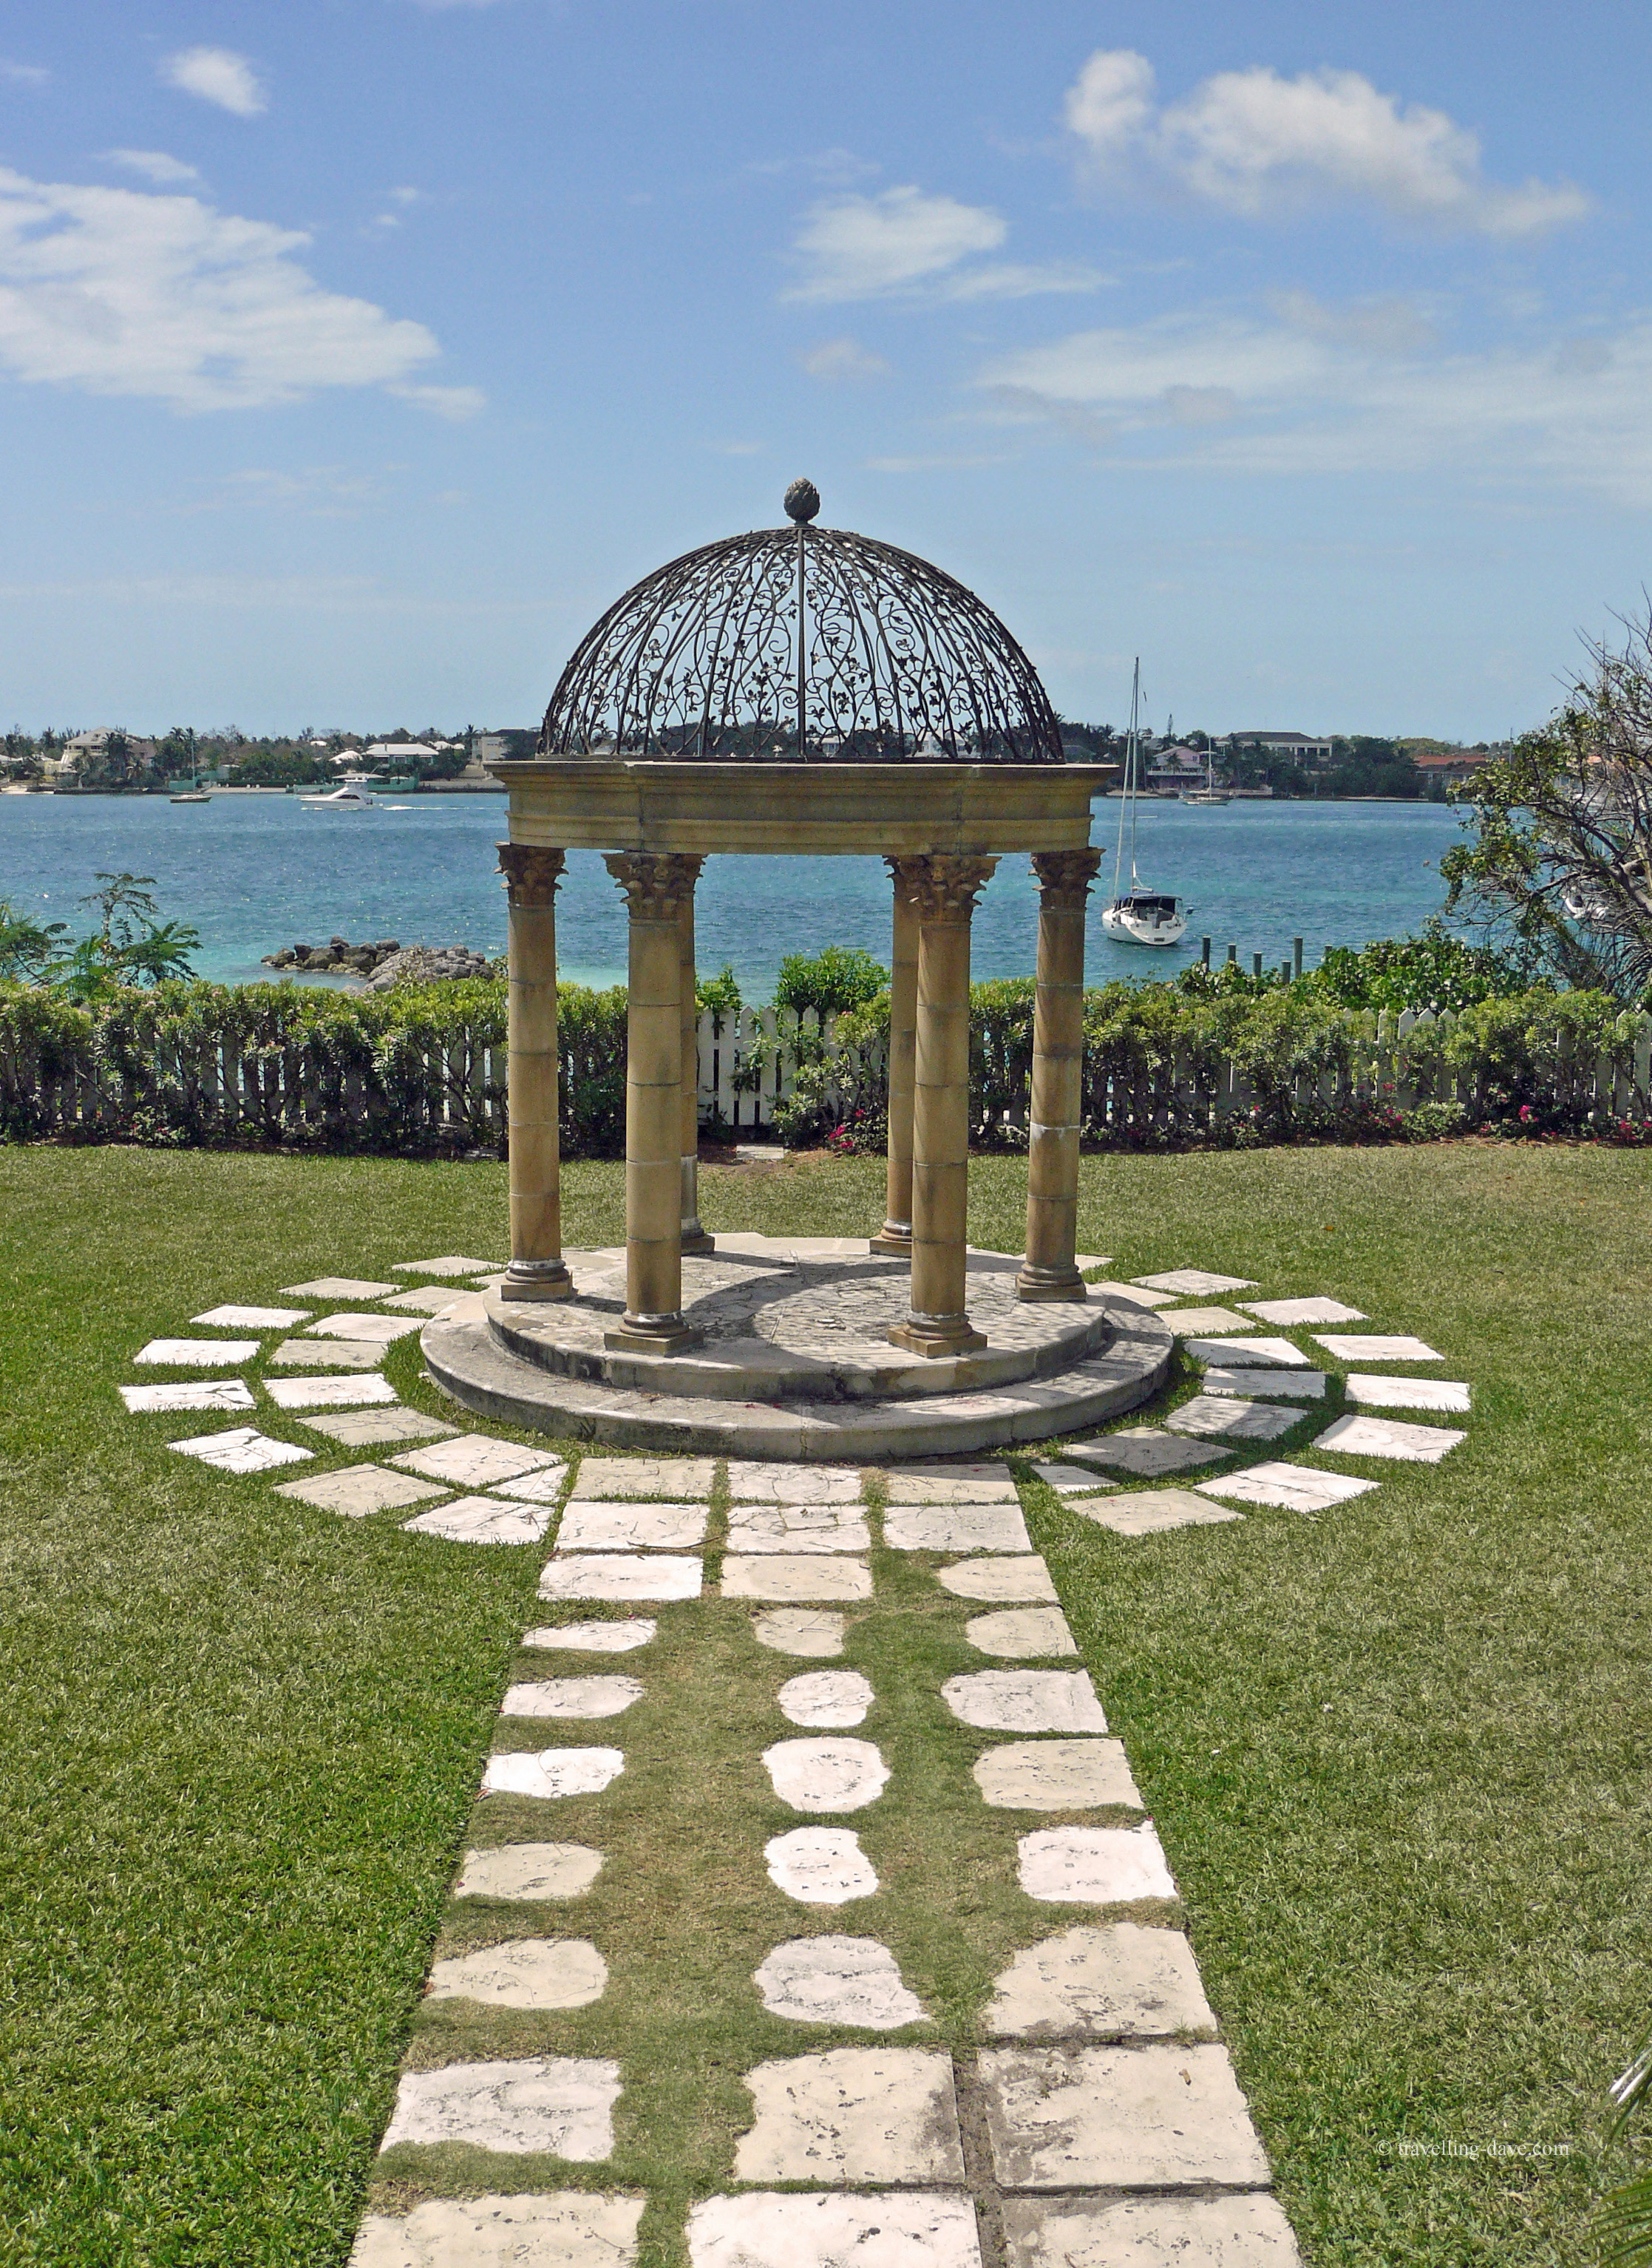 View of a gazebo and the sea in the Bahamas